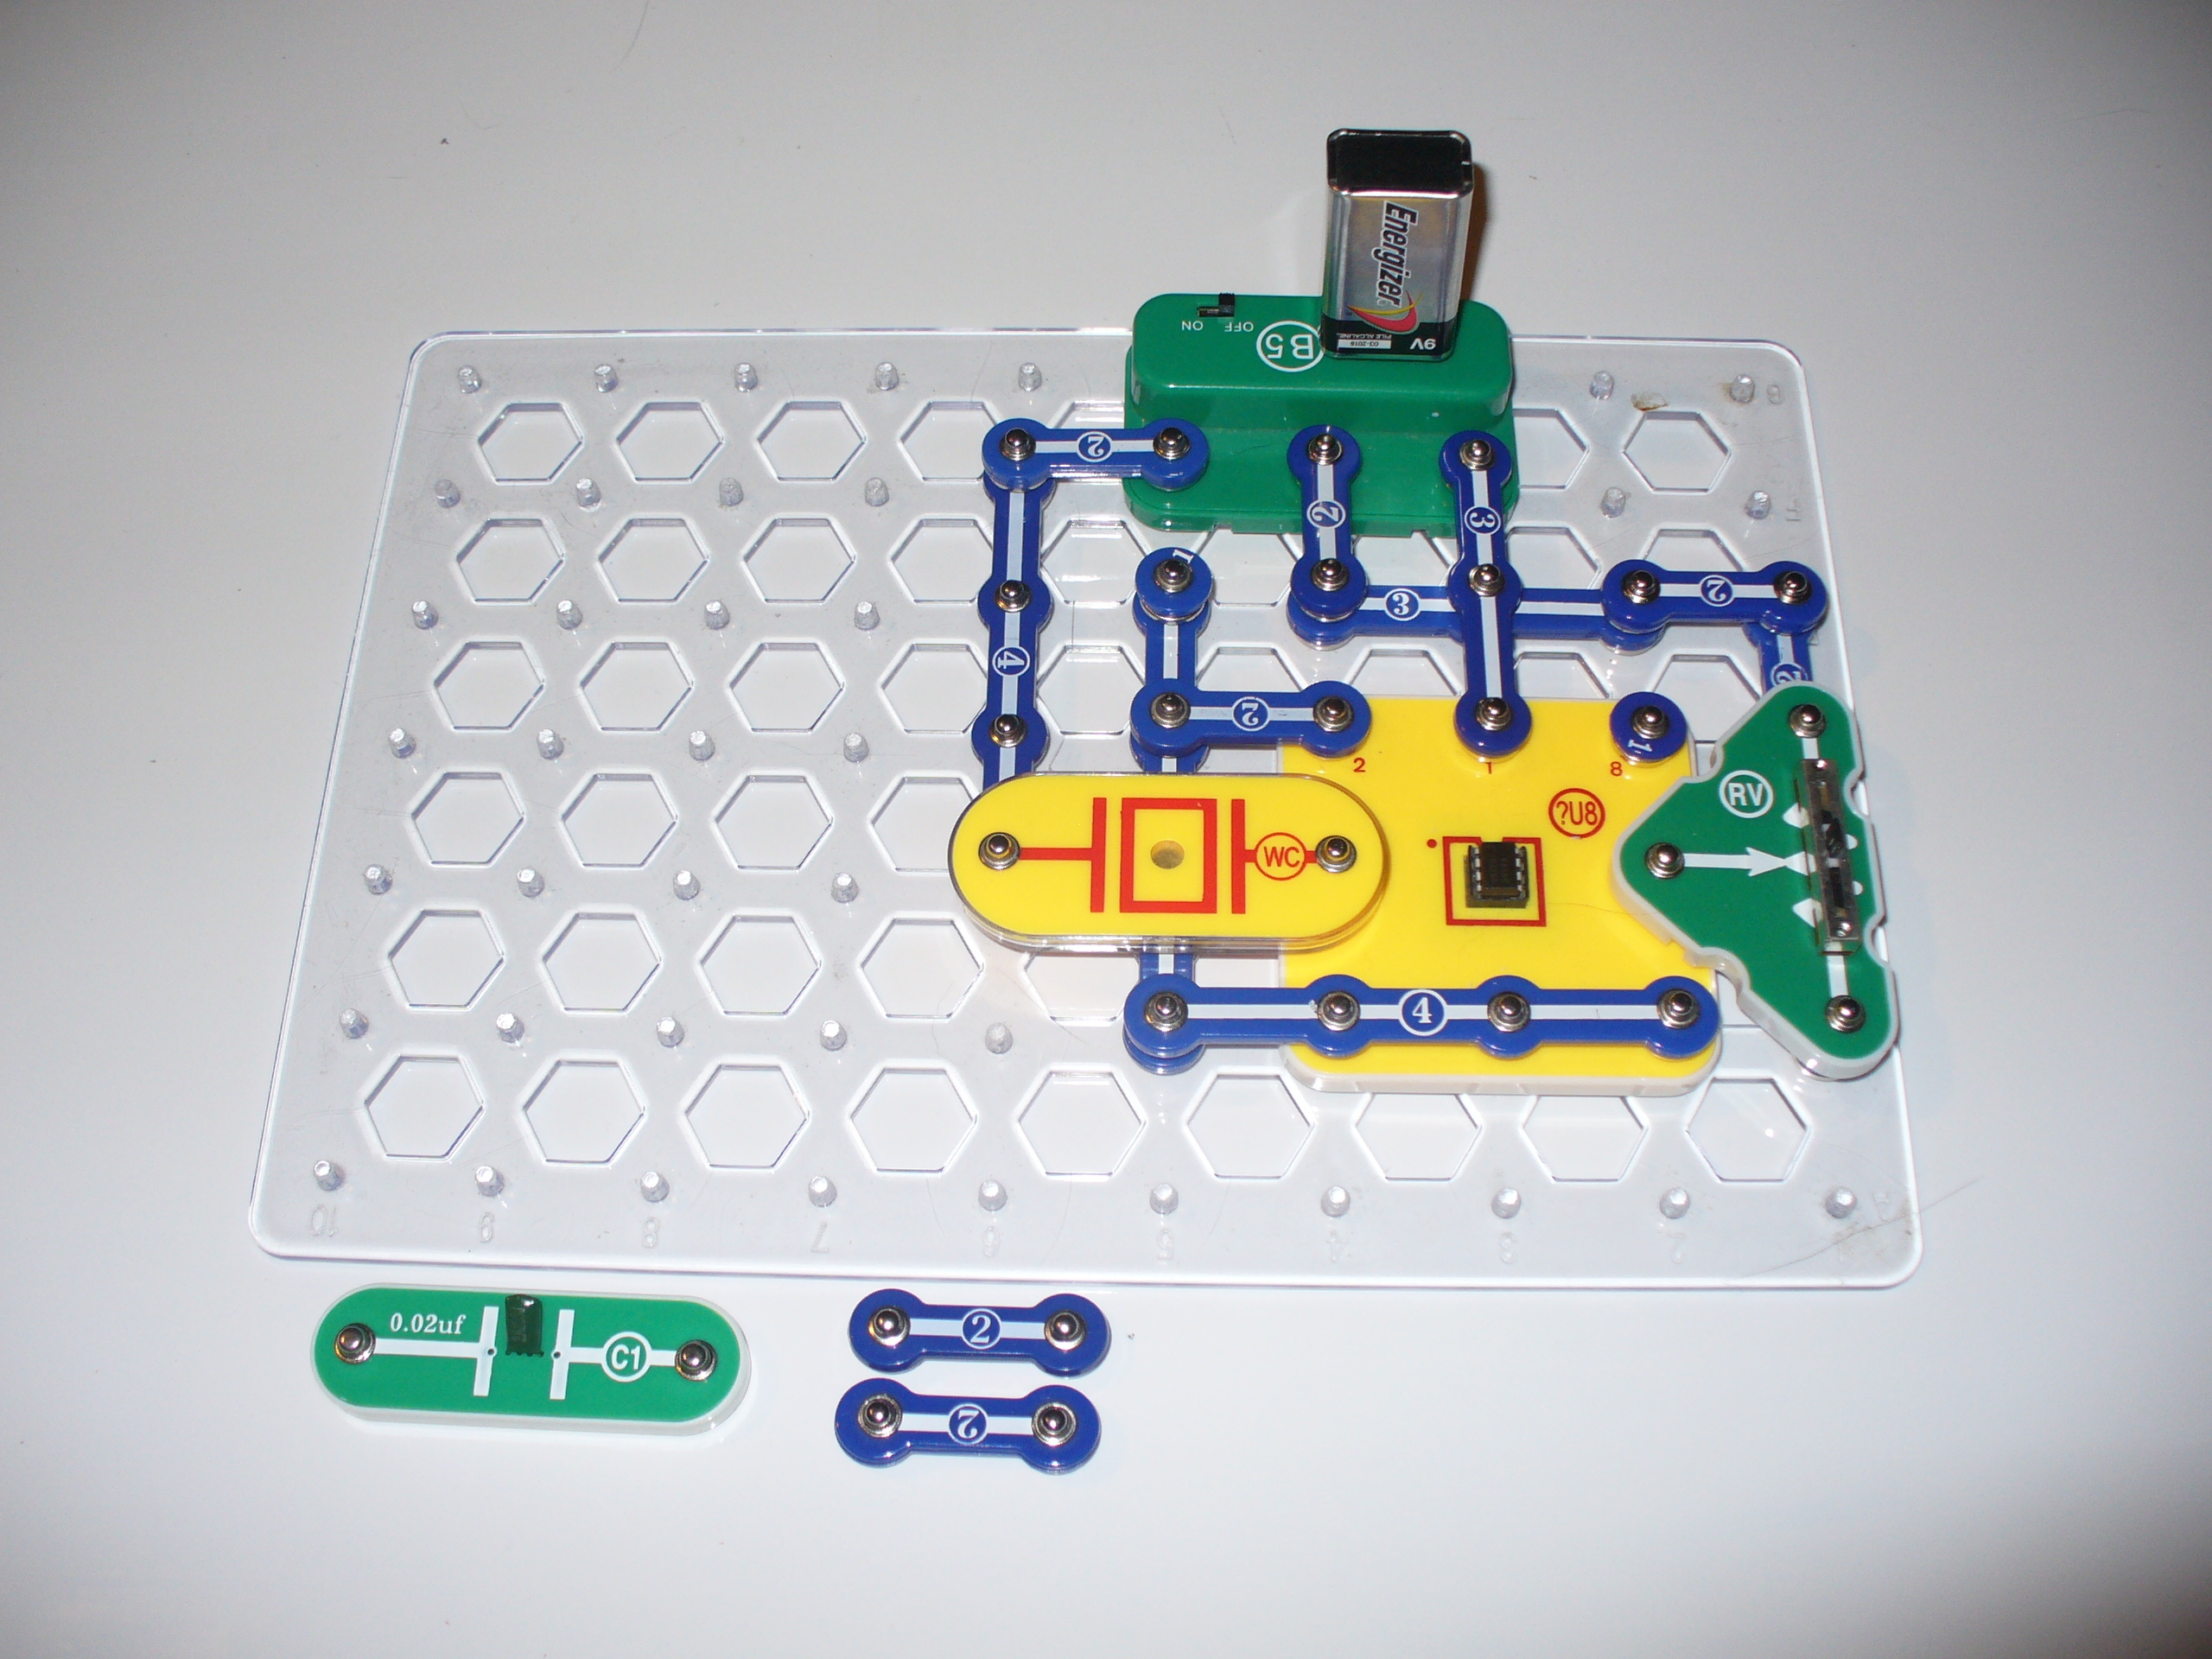 Add The Snap Circuits Blocks To The Base Grid As Demonstrated In The